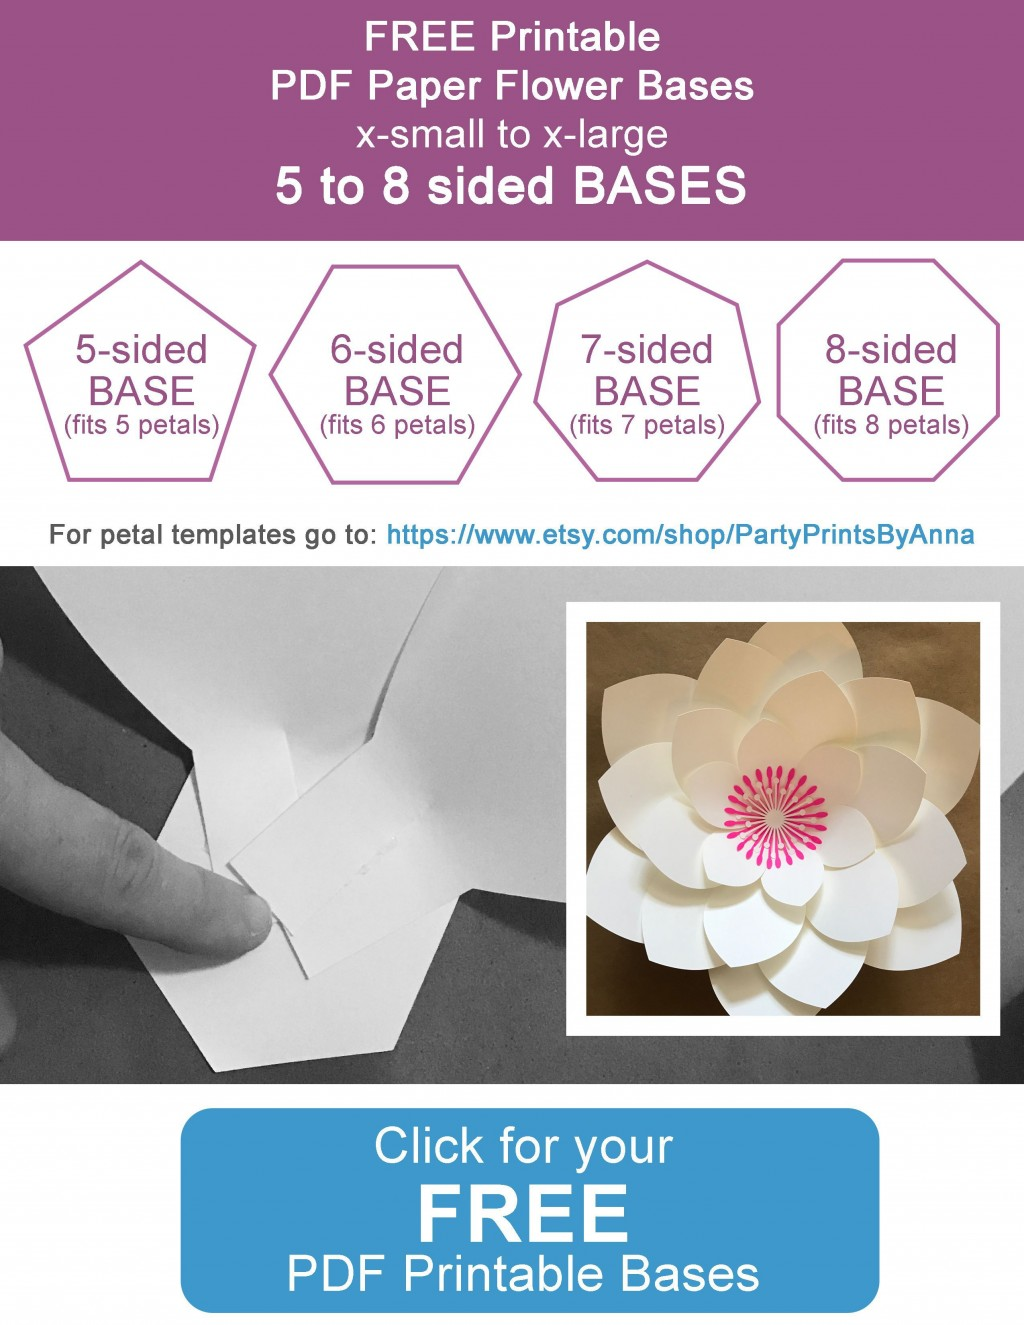 004 Fascinating Paper Flower Template Free Concept  Large Extra PrintableLarge